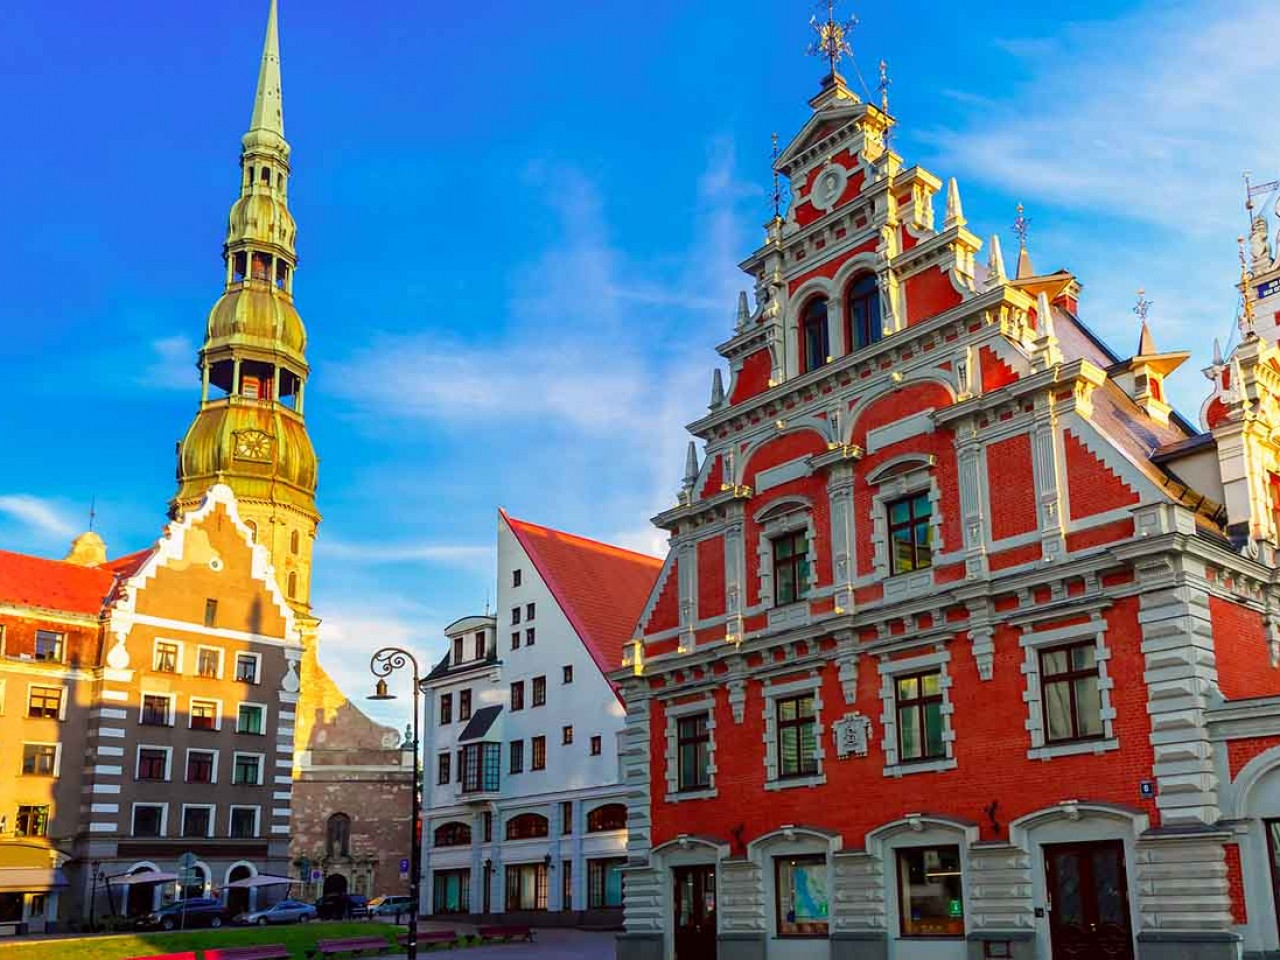 Riga for Independent Choir Tours